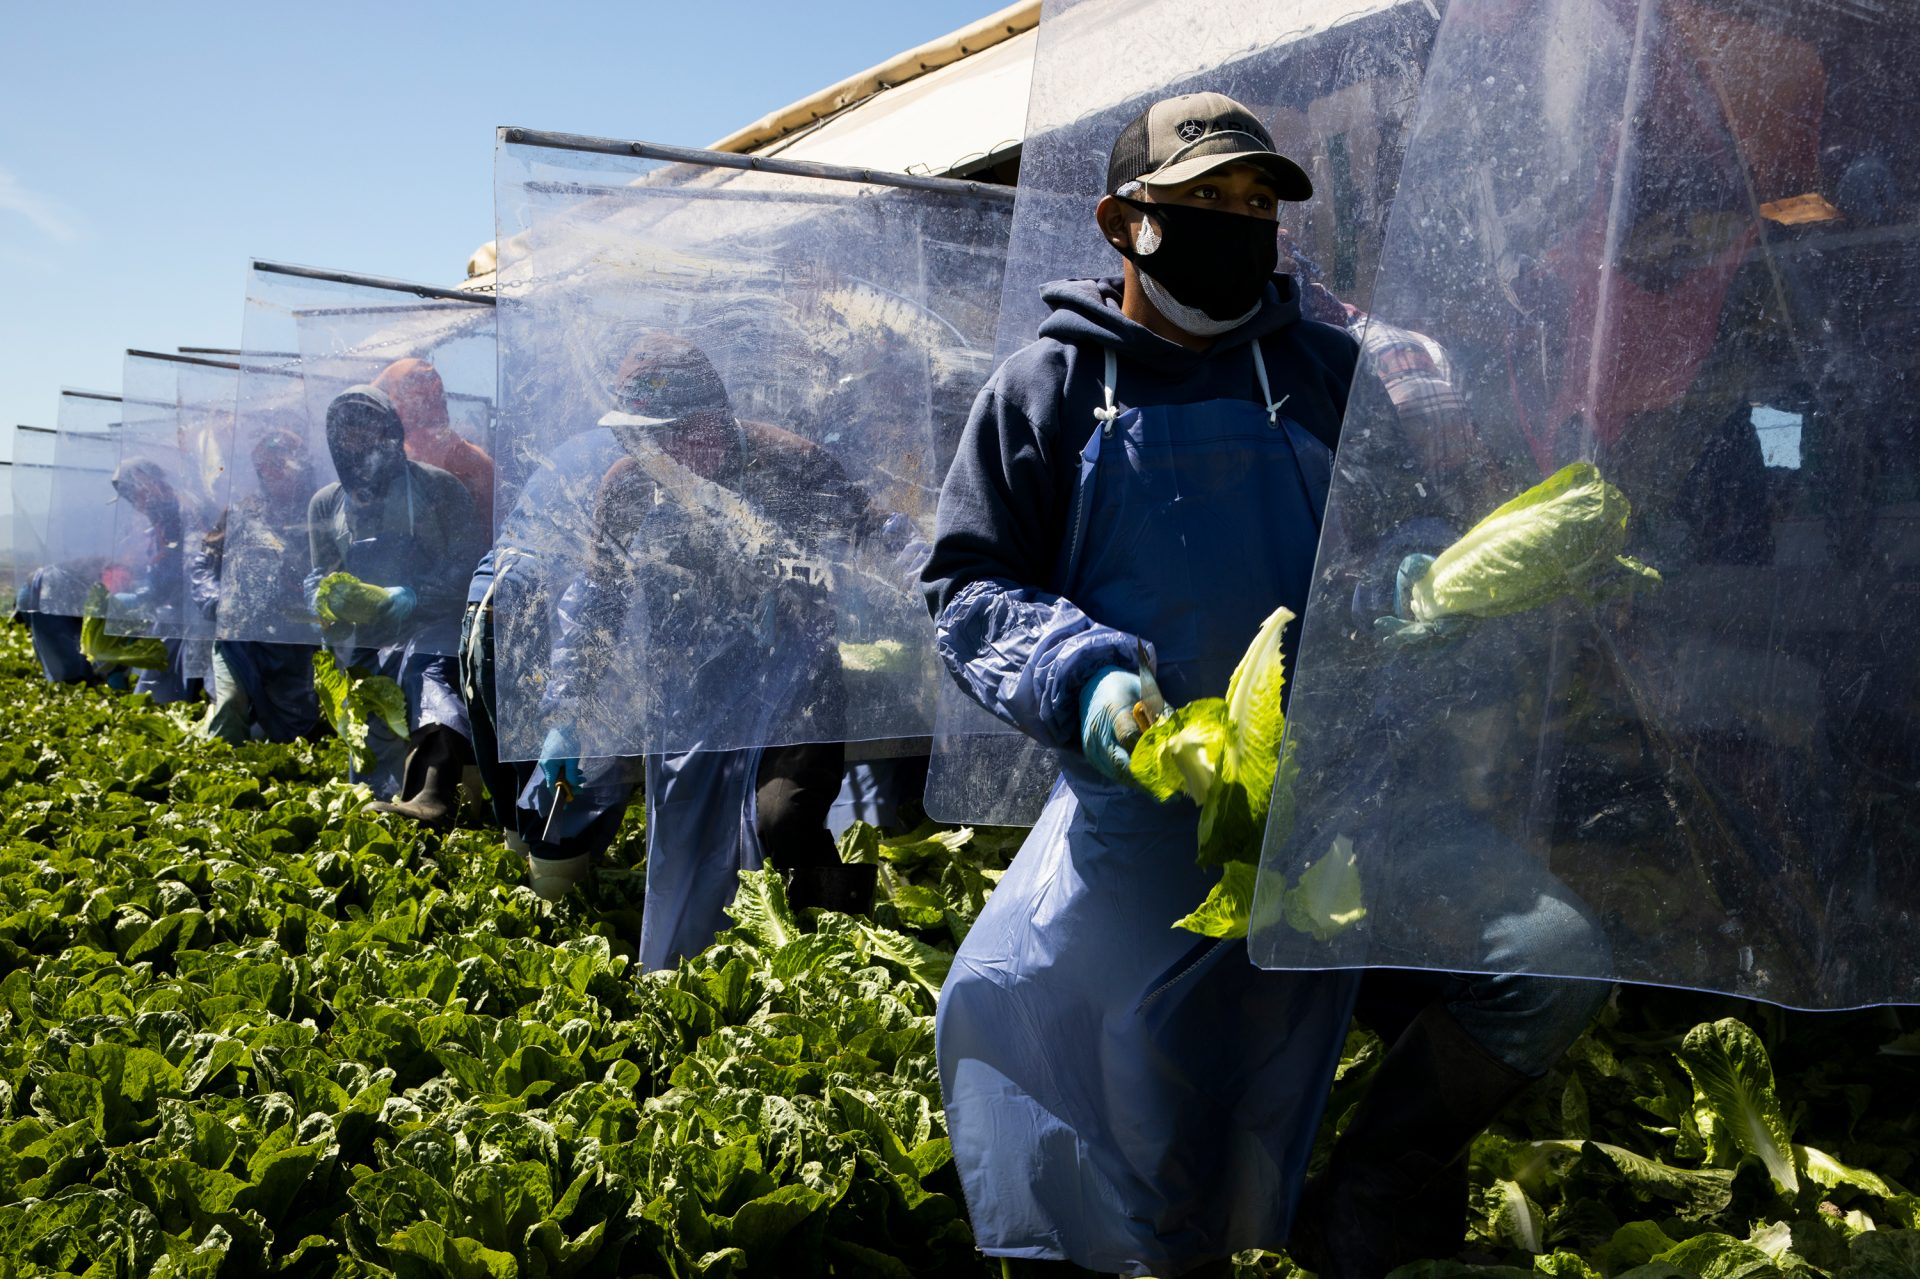 Fresh Harvest farm laborers harvest romaine lettuce on a machine with heavy plastic dividers that separate workers from each other in Greenfield, California, April 27, 2020.